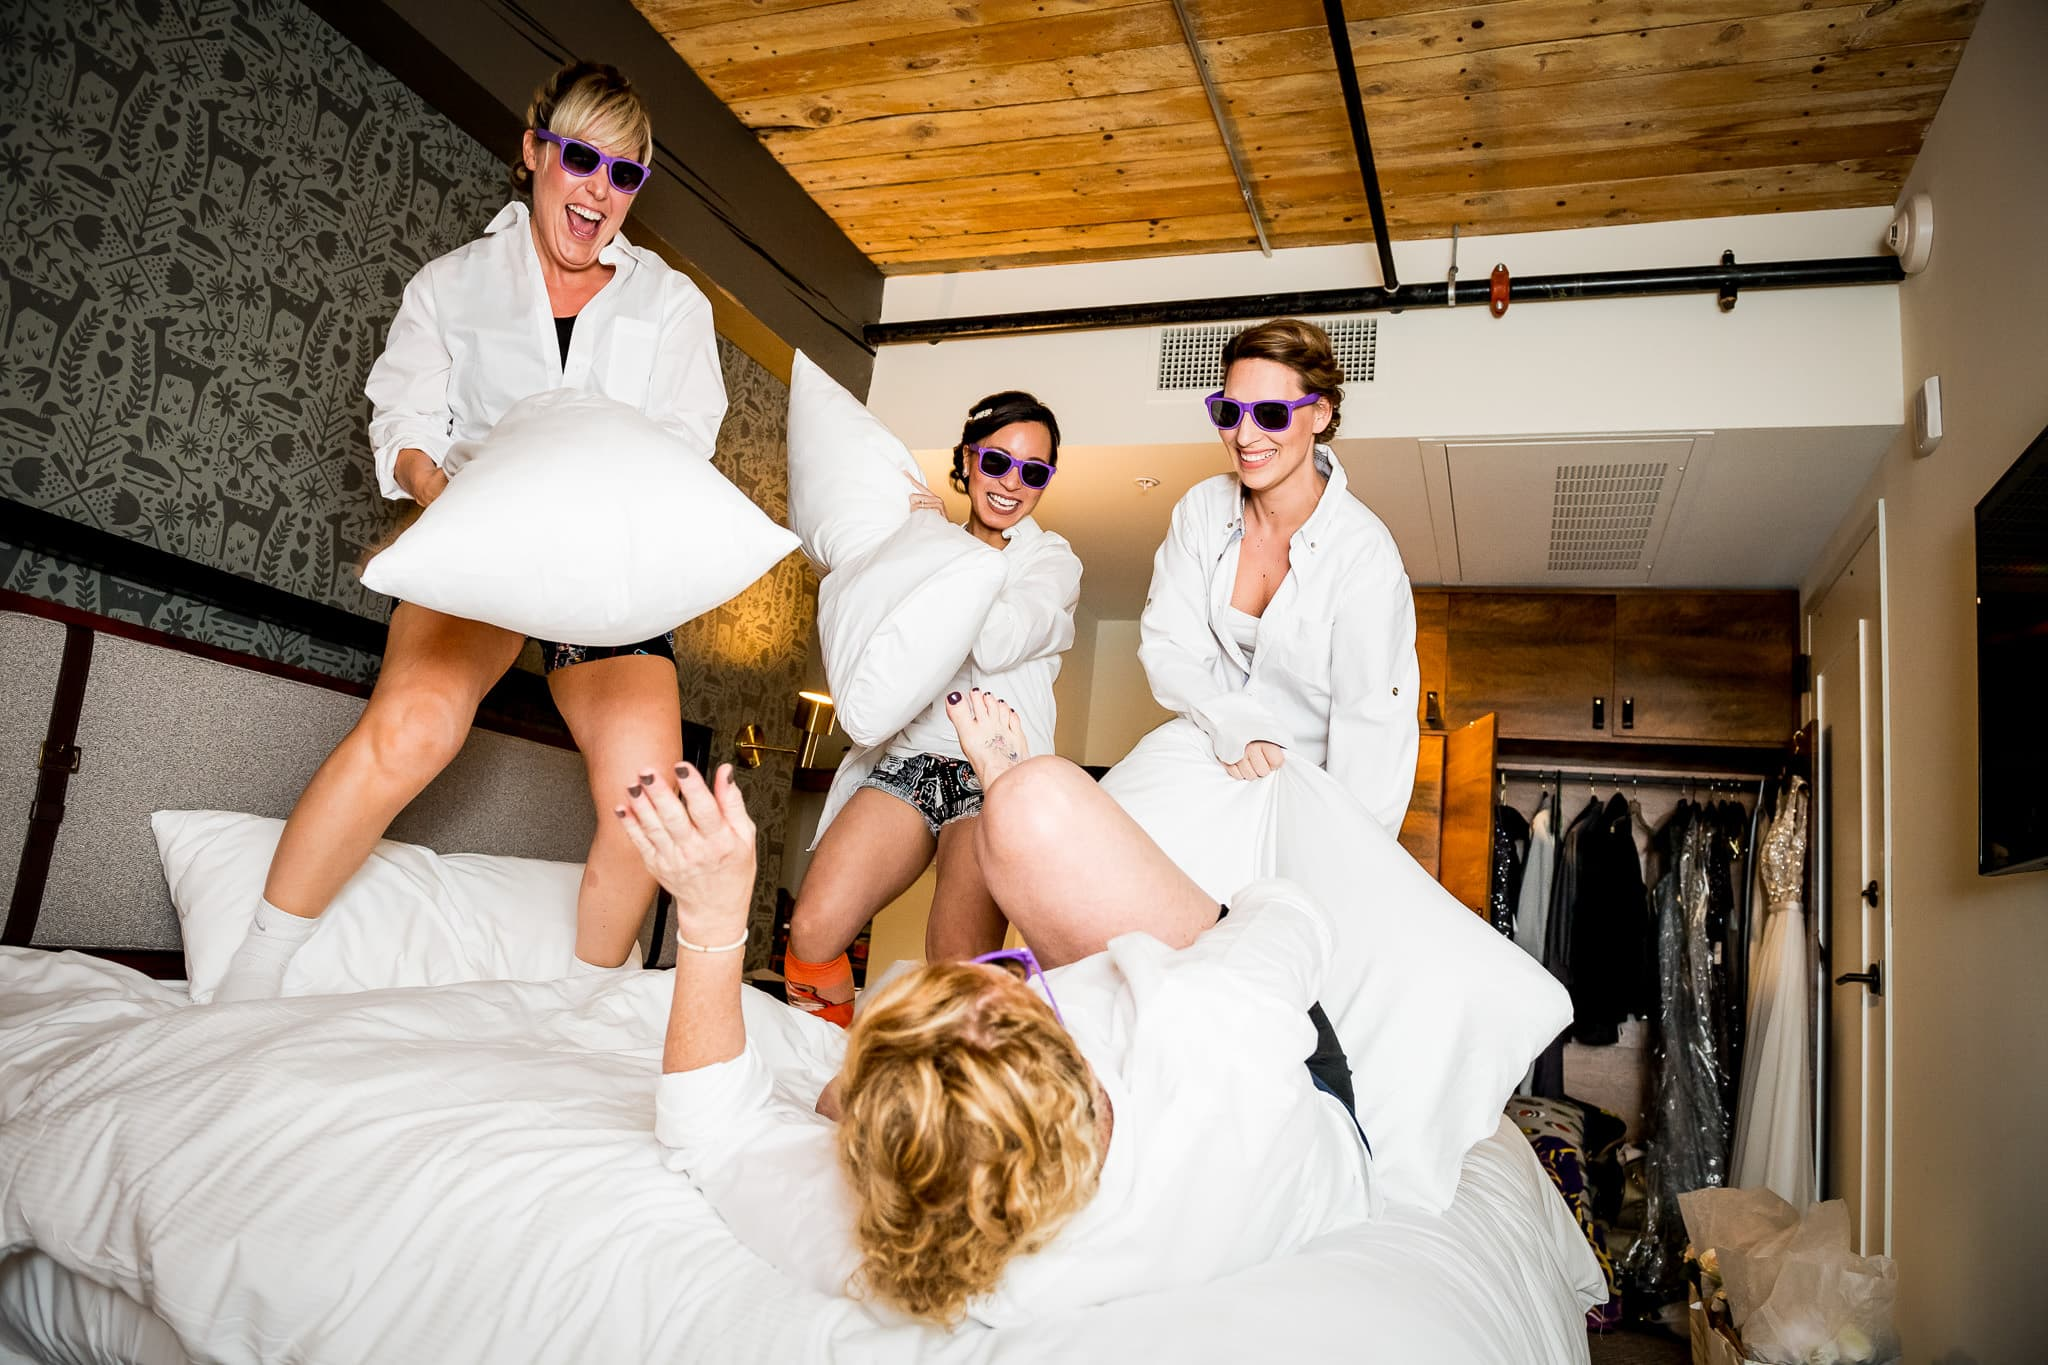 Bridesmaids pillow fight at the Hewing Hotel